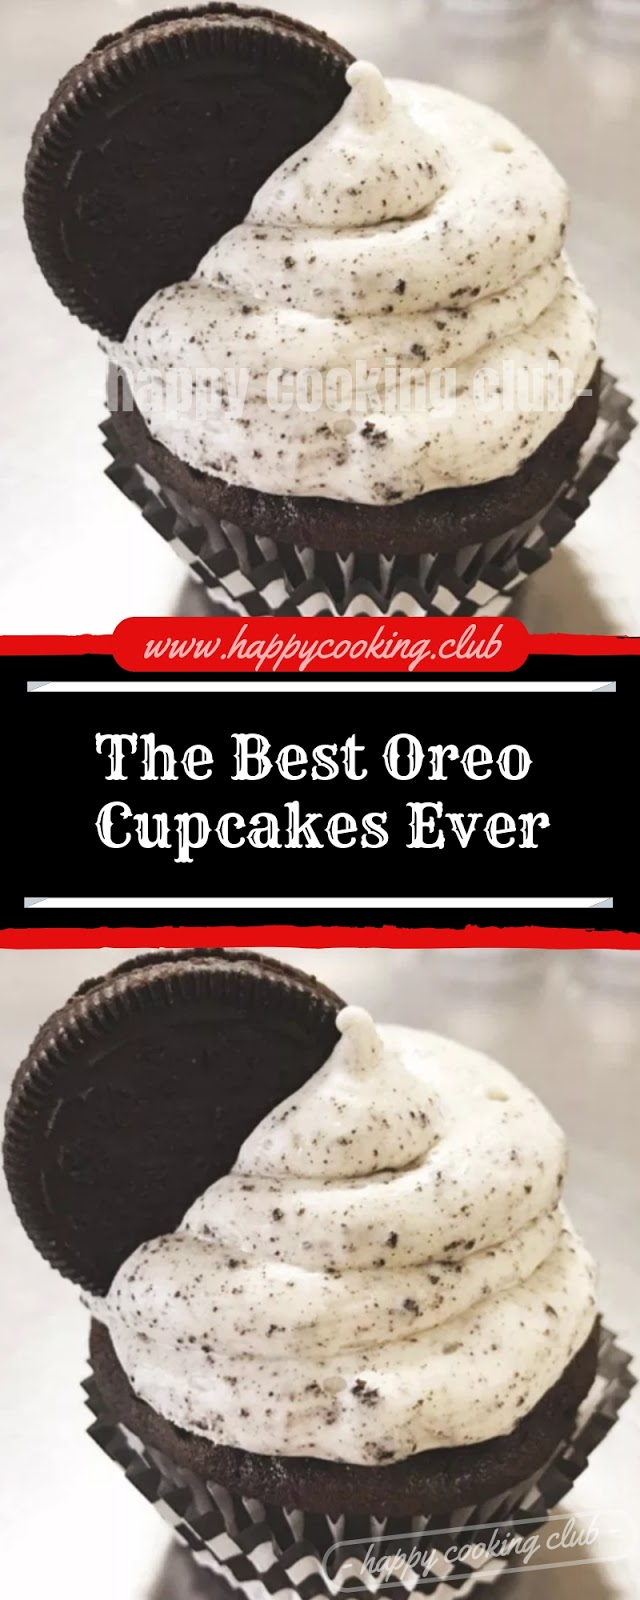 The Best Oreo Cupcakes Ever